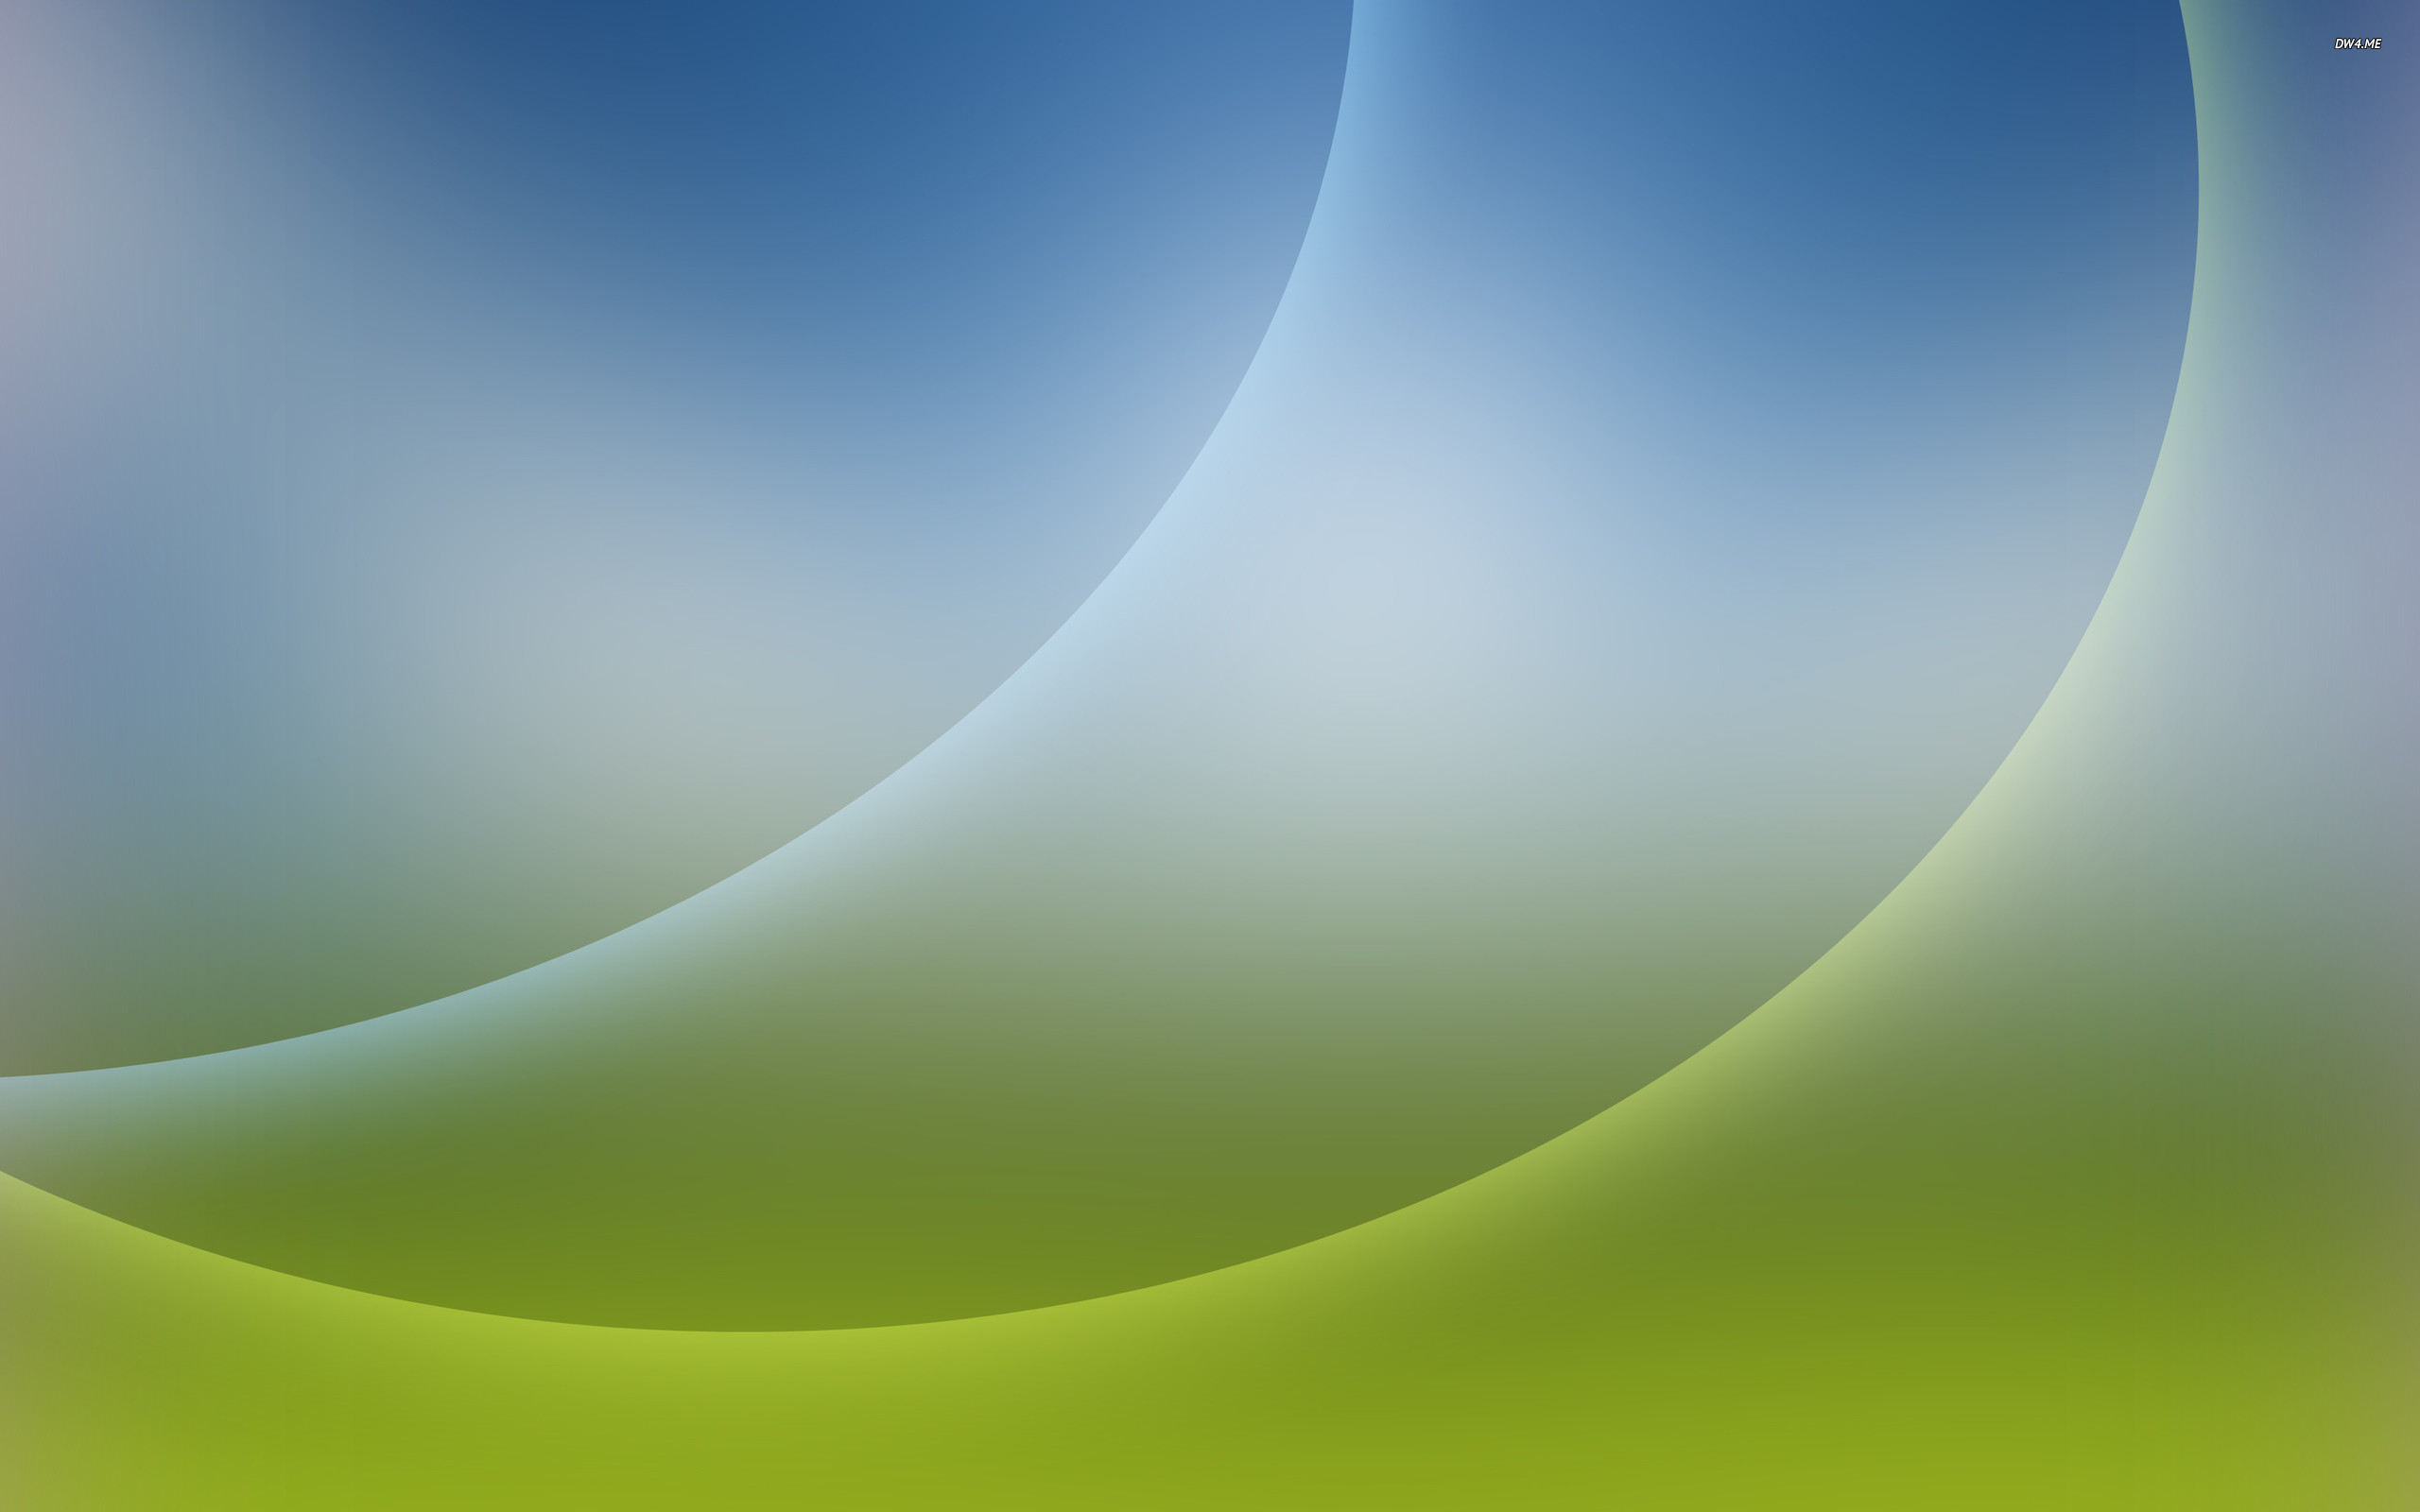 Res: 2560x1600, Curves on a gren and blue gradient